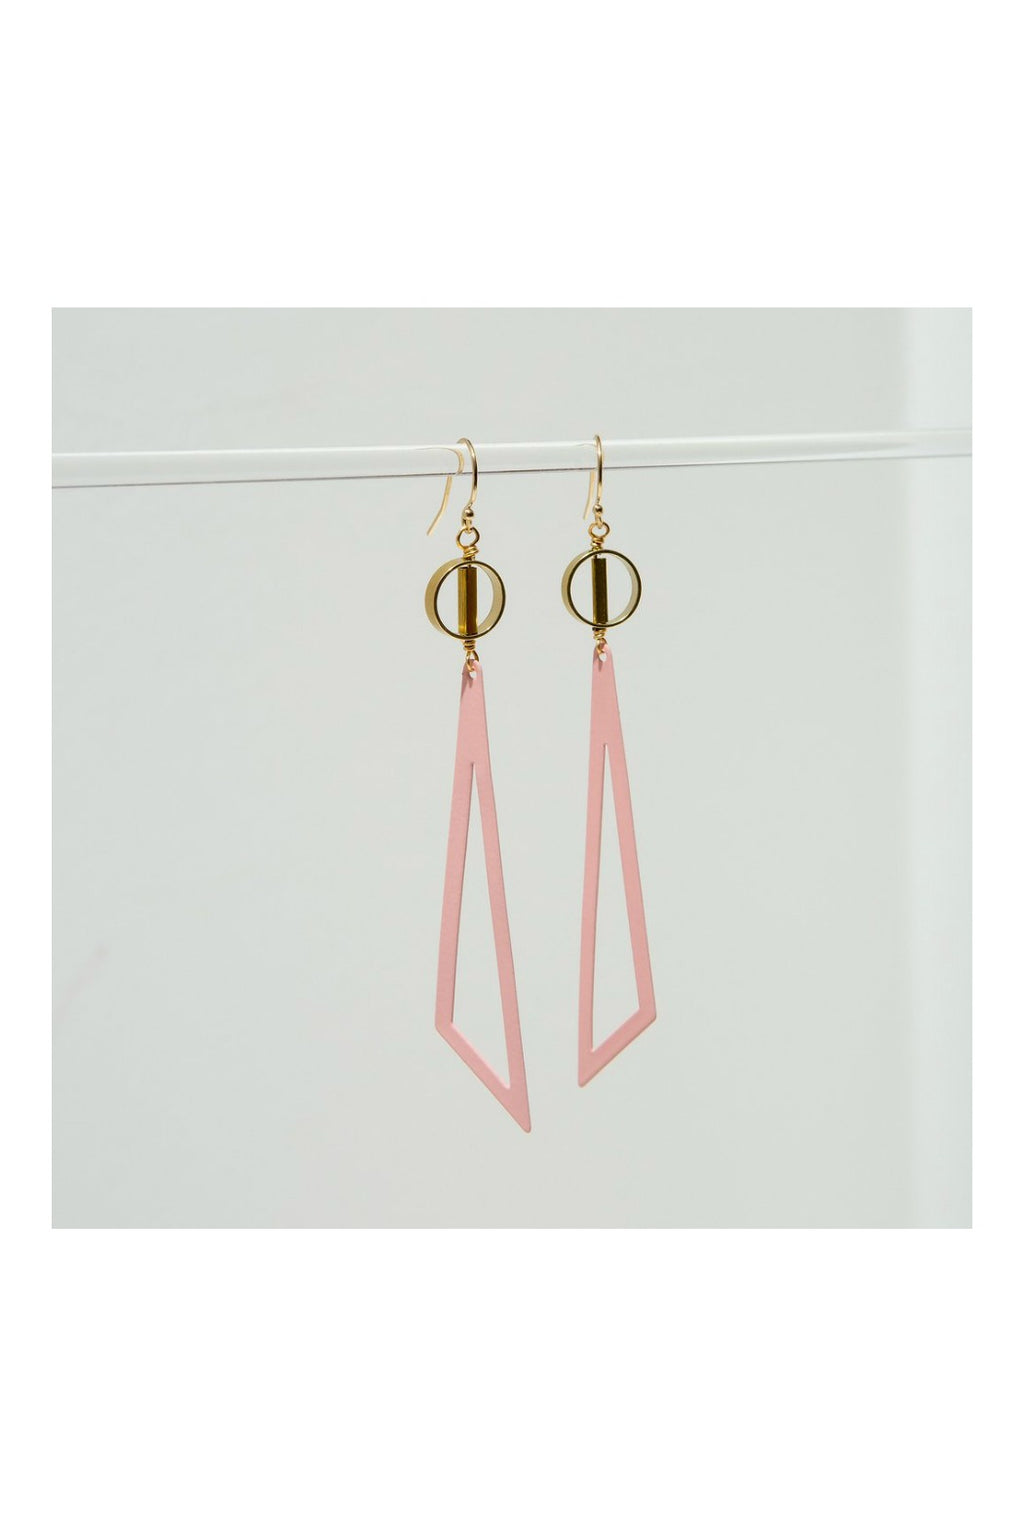 Larissa Loden Tilde Earrings - Pink